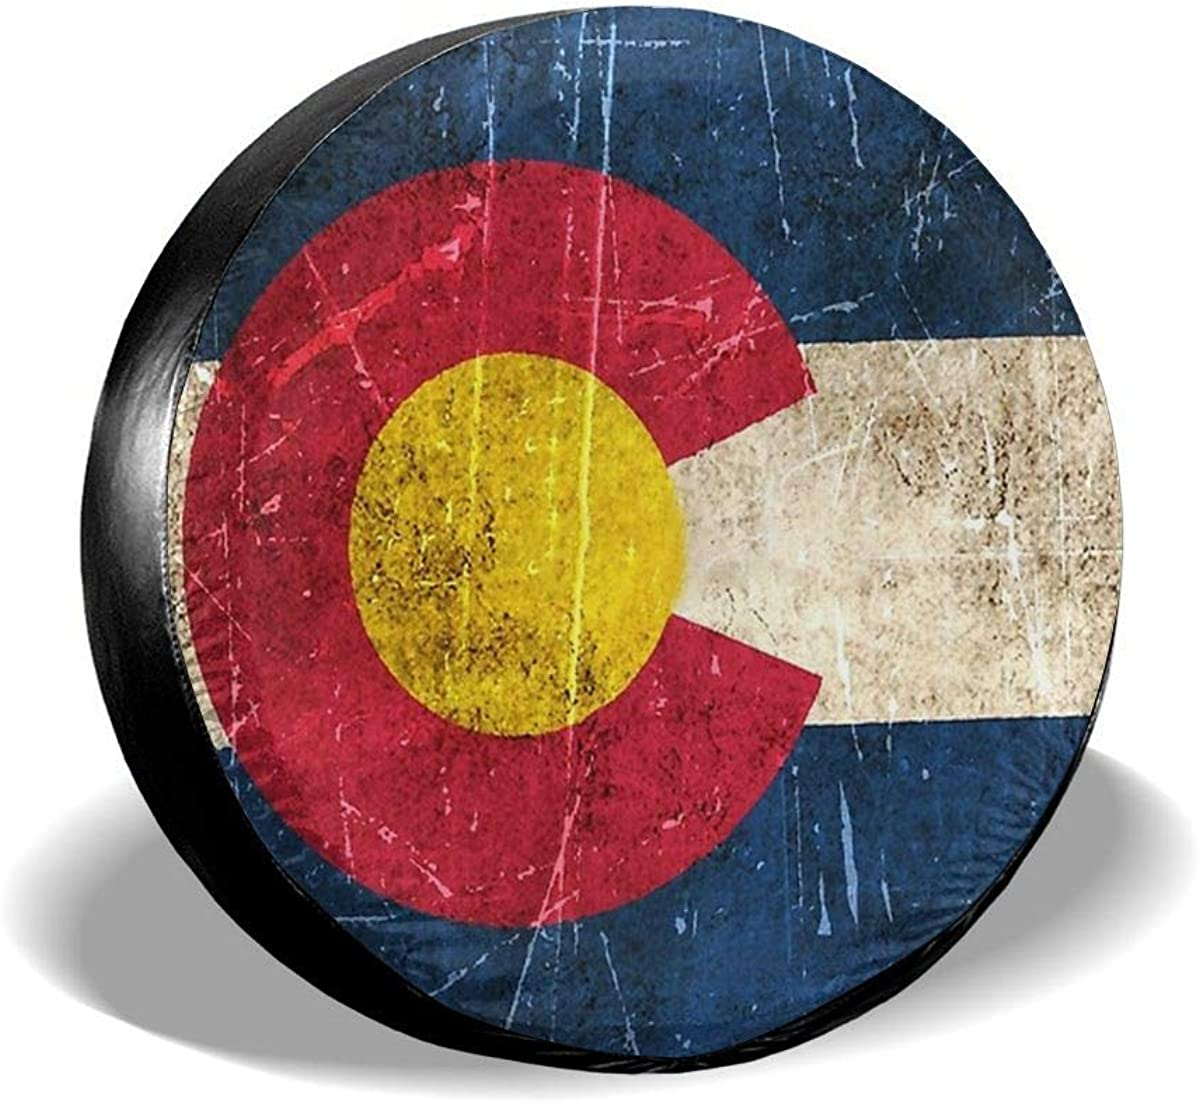 RV Hhill Swater Vintage Aged and Scratched Colorado Flag Spare Tire Wheel Cover Waterproof Dust-Proof Universal Tire Covers Trailer Jeep Truck and Many Vehicles 14 15 16 17 SUV